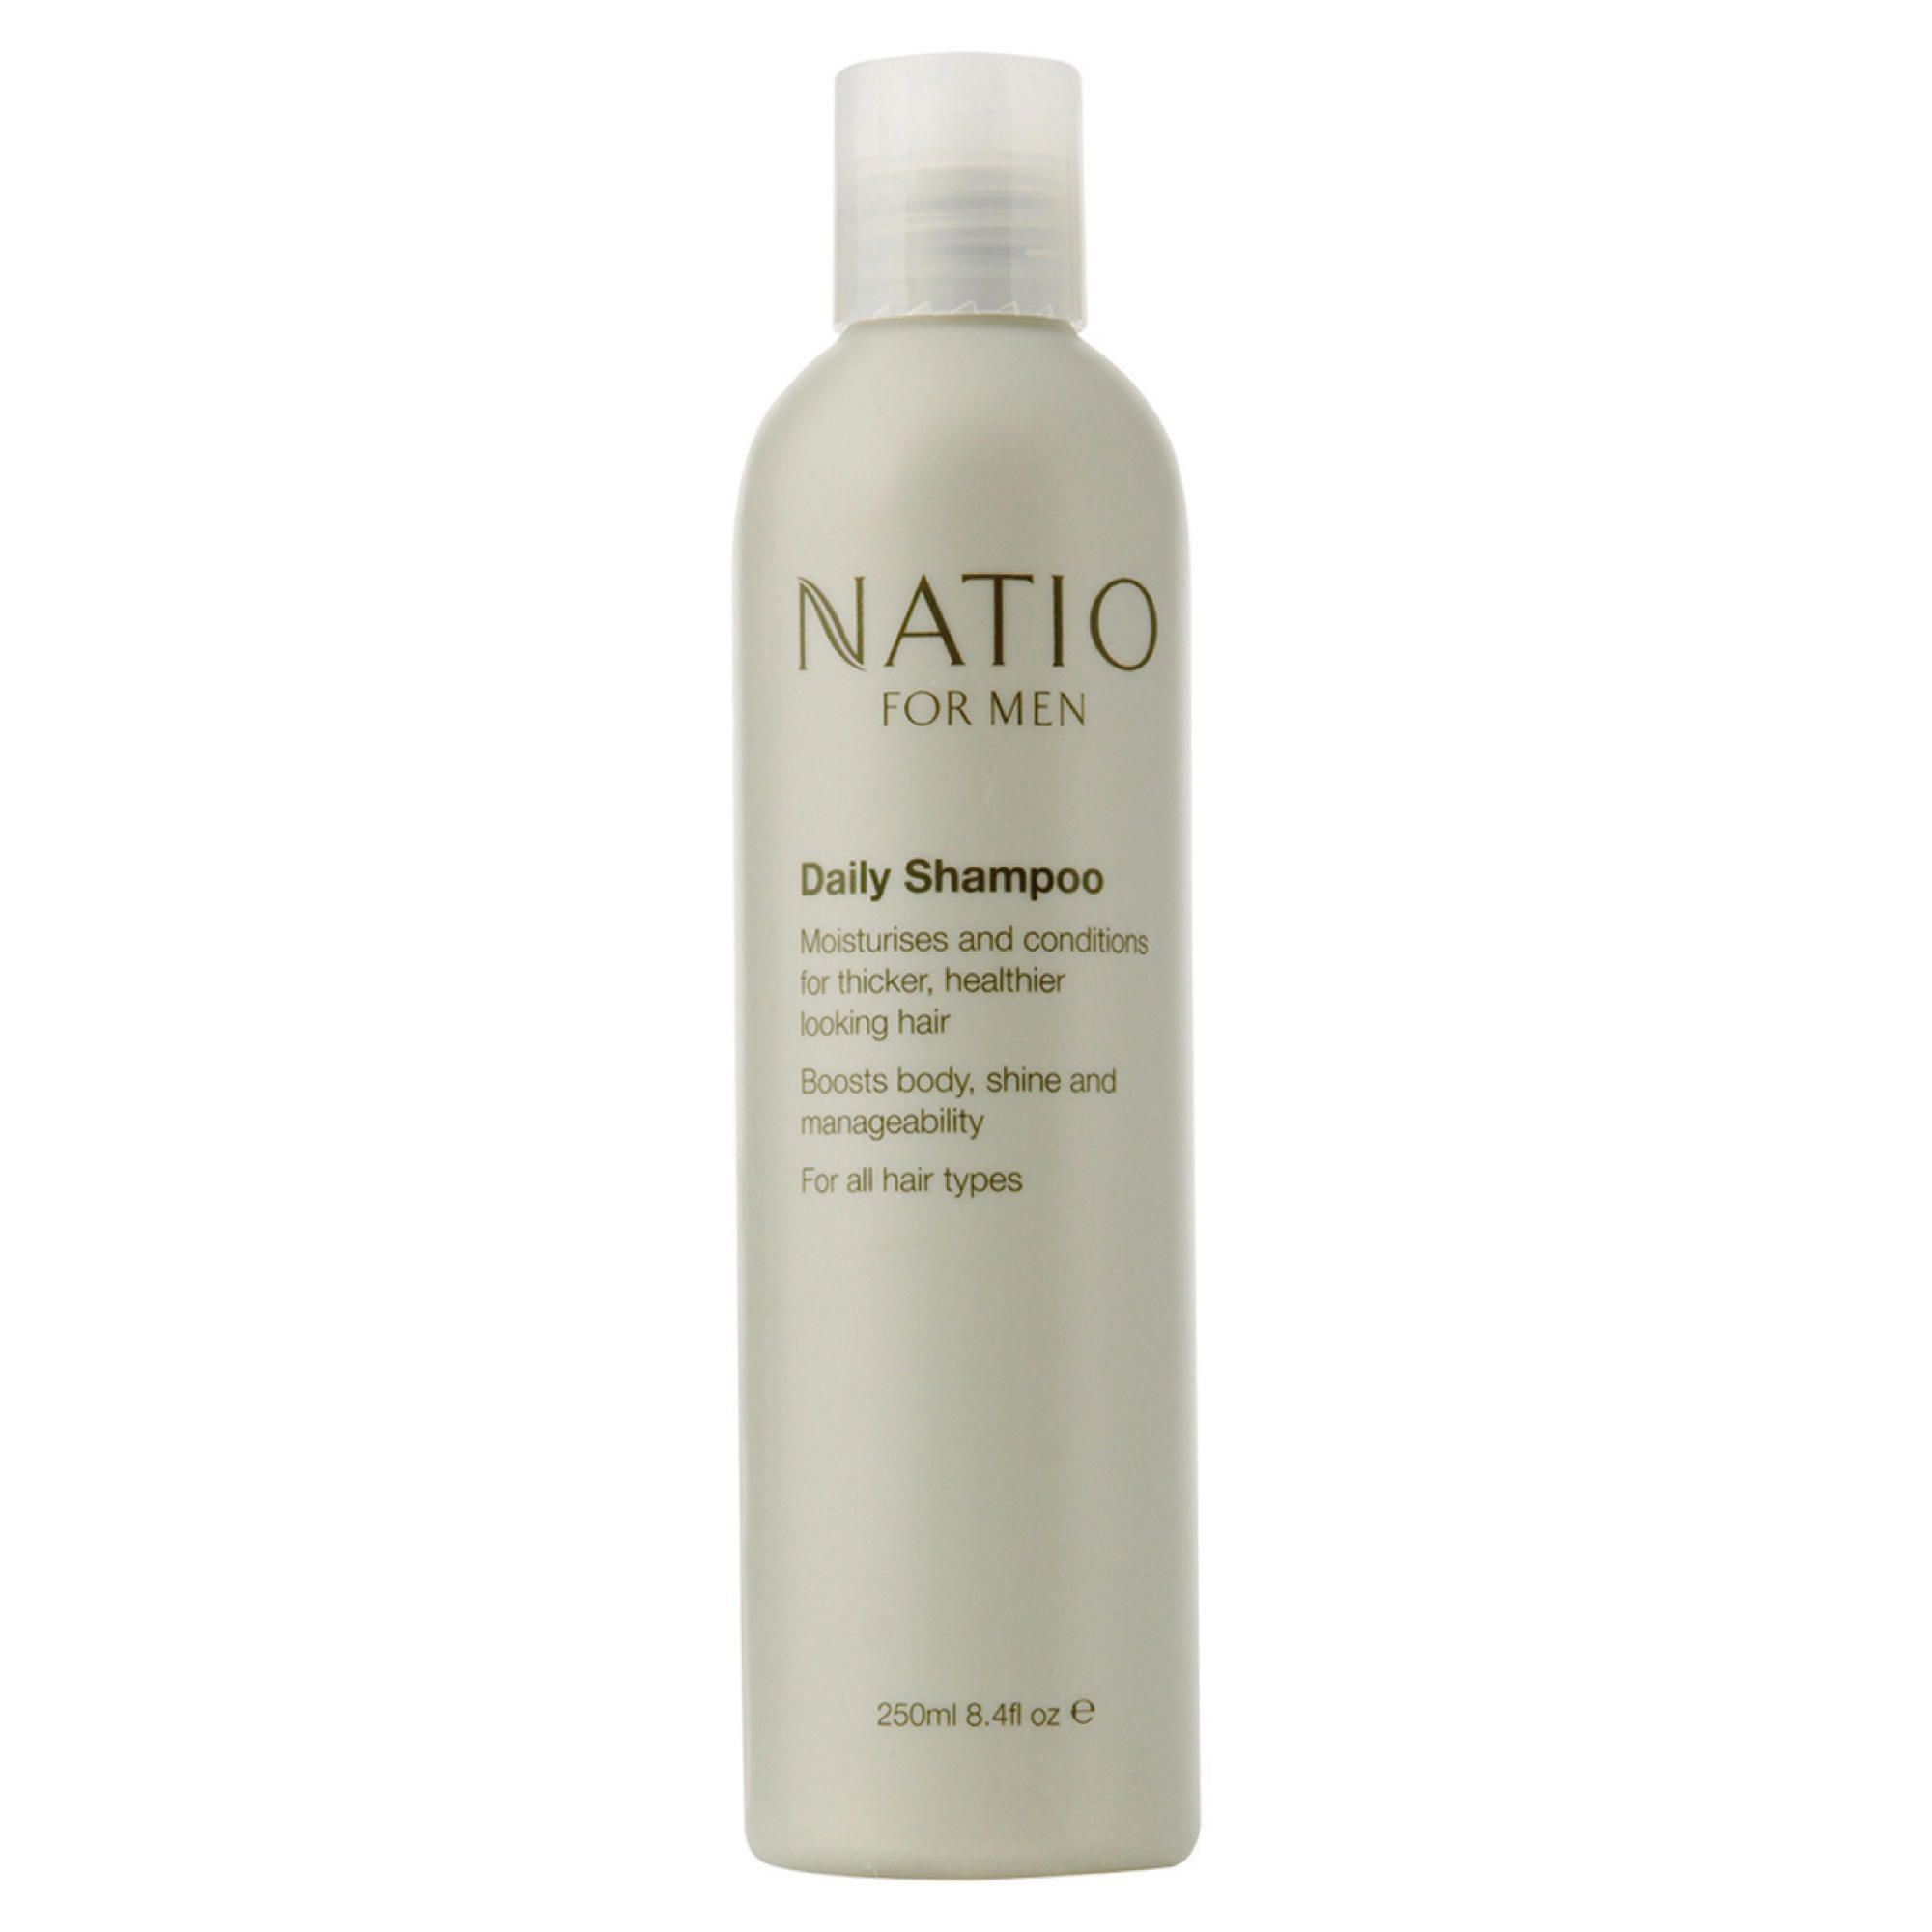 Natio Natio For Men Daily Shampoo